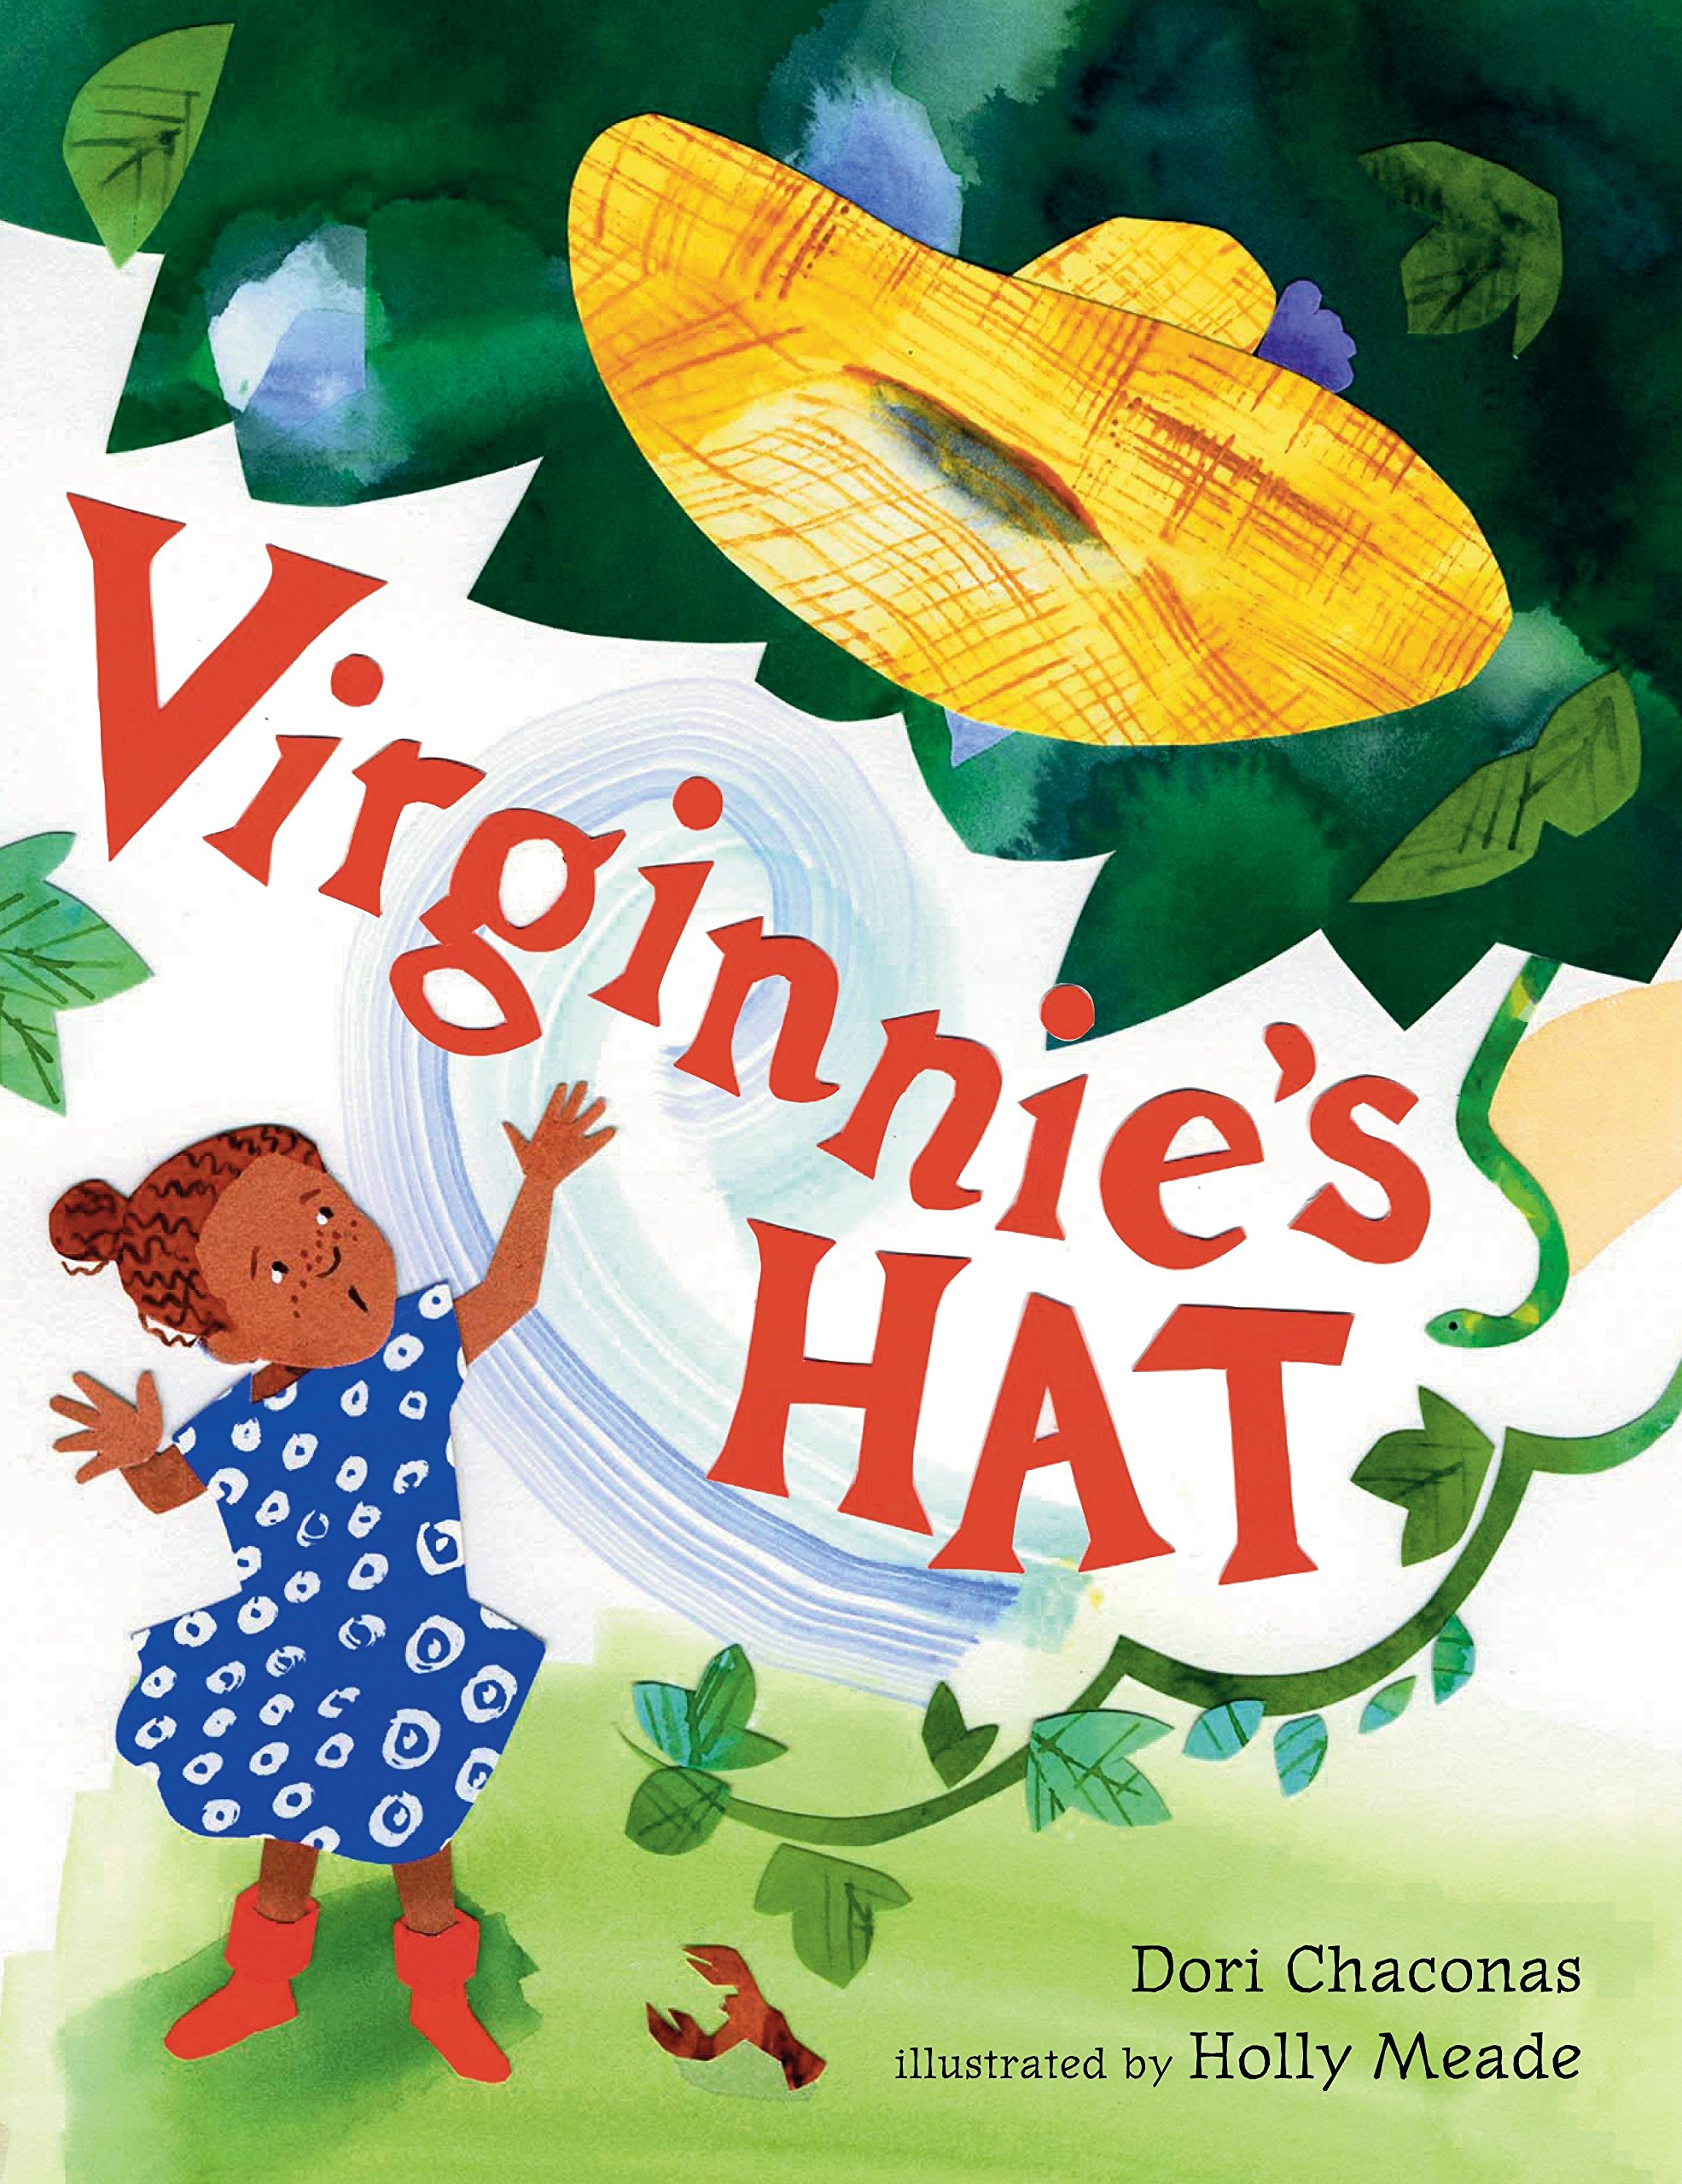 Virginnie's Hat